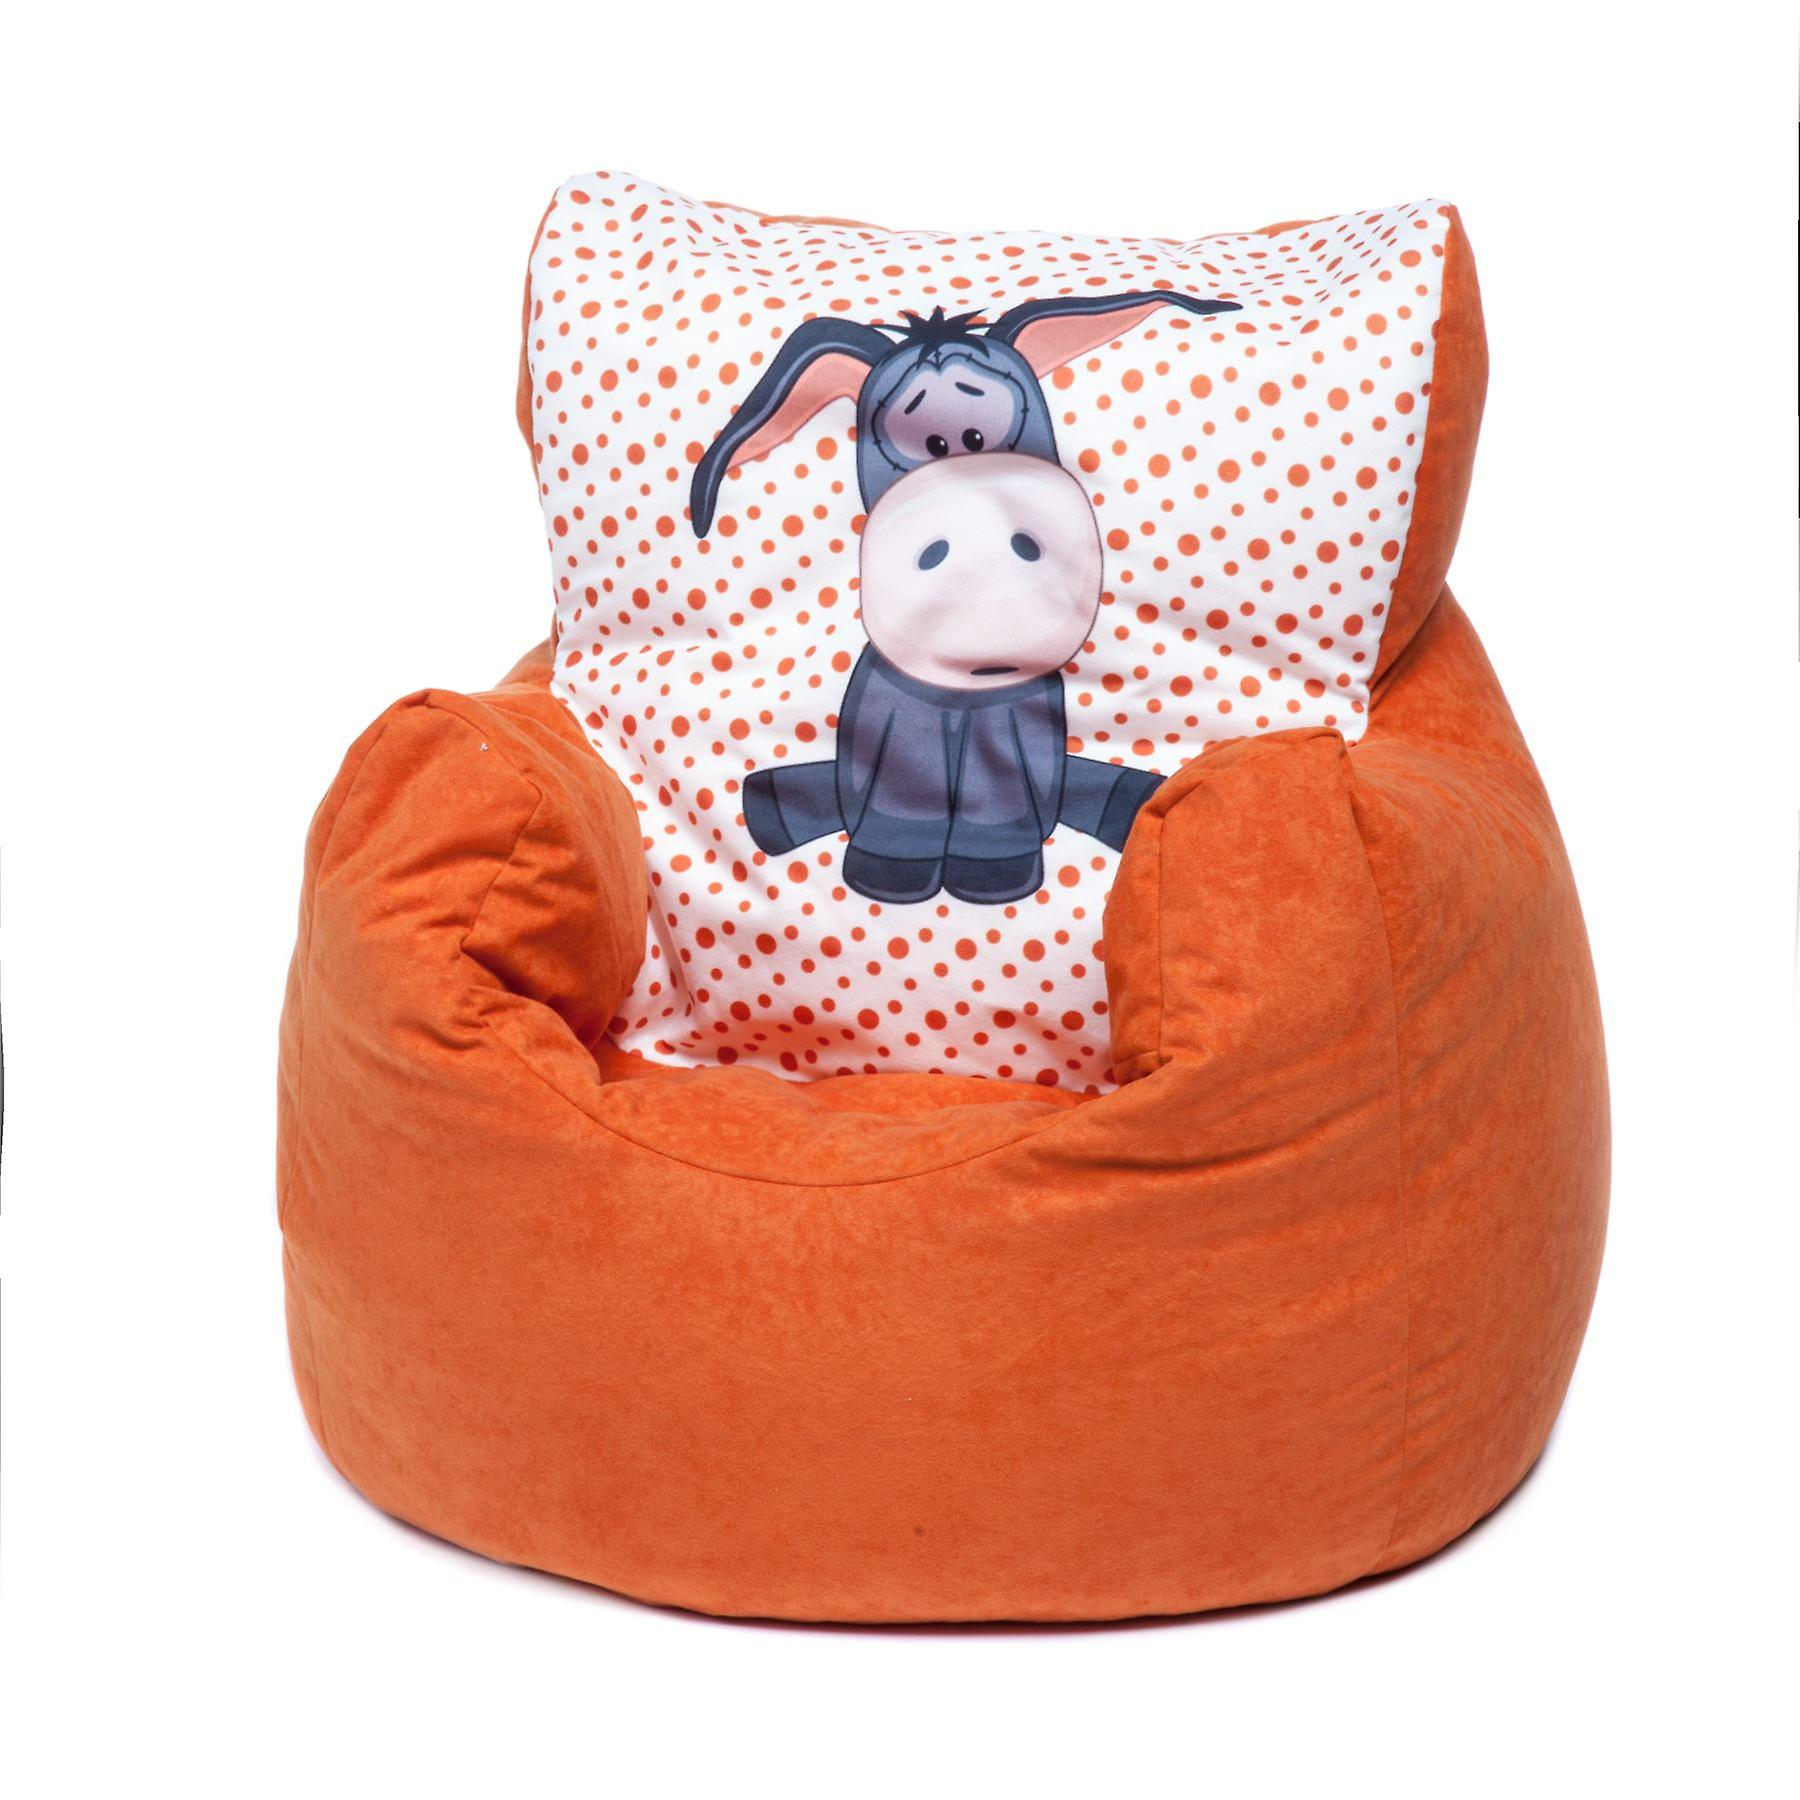 Groovy Loft 25 Toddler Animal Print Soft Plush Bean Bag Chair Donkey Orange Ocoug Best Dining Table And Chair Ideas Images Ocougorg